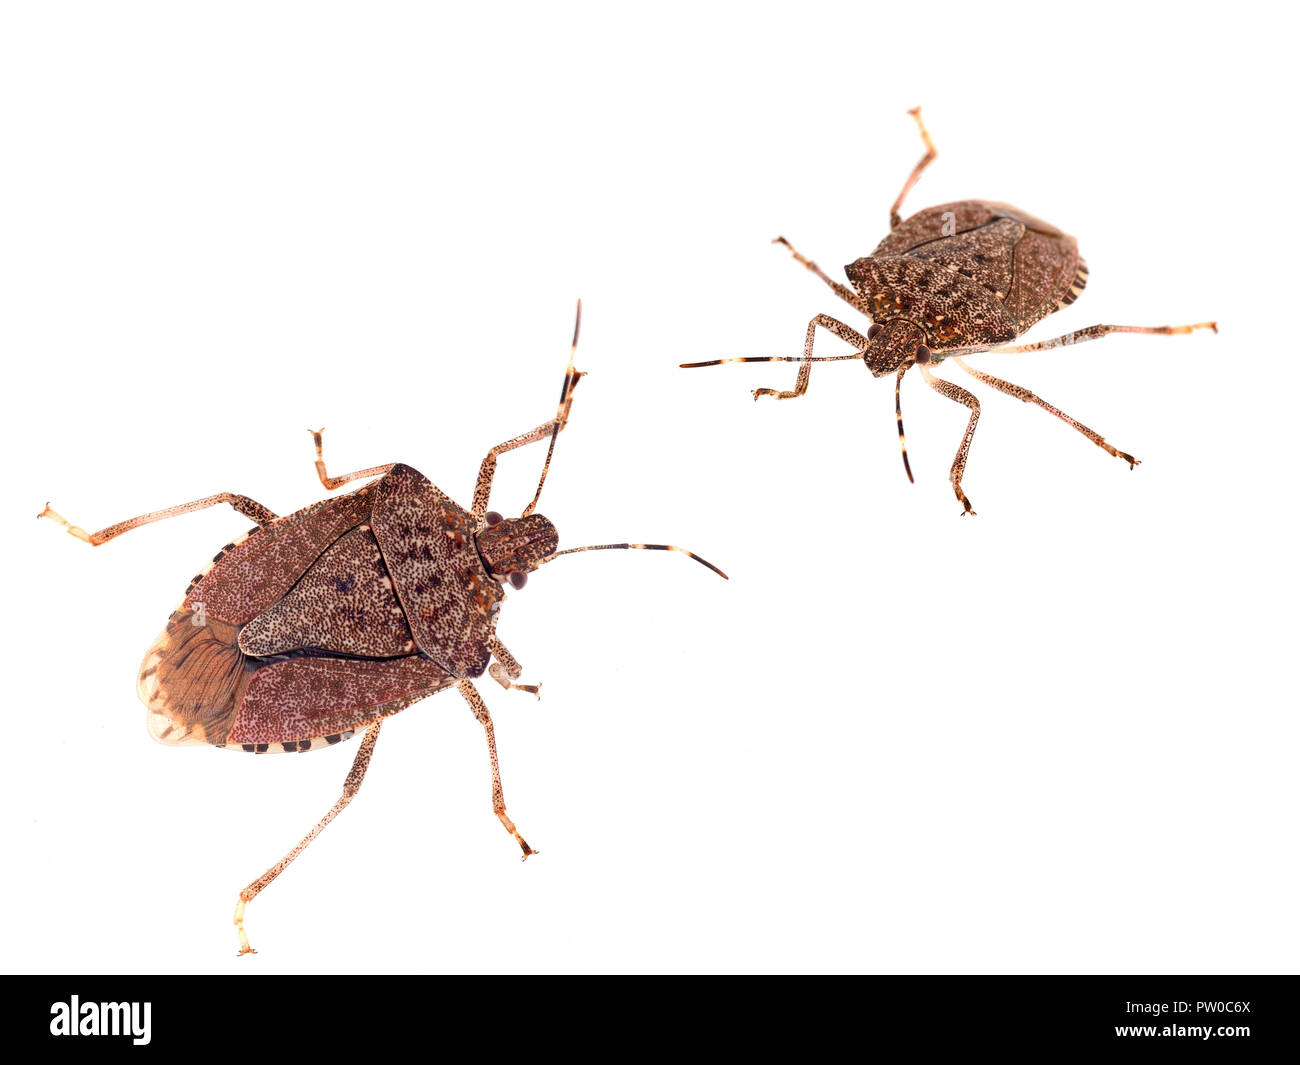 Brown marmorated stink bugs Halyomorpha halys, an invasive species from Asia. On white background. Stock Photo